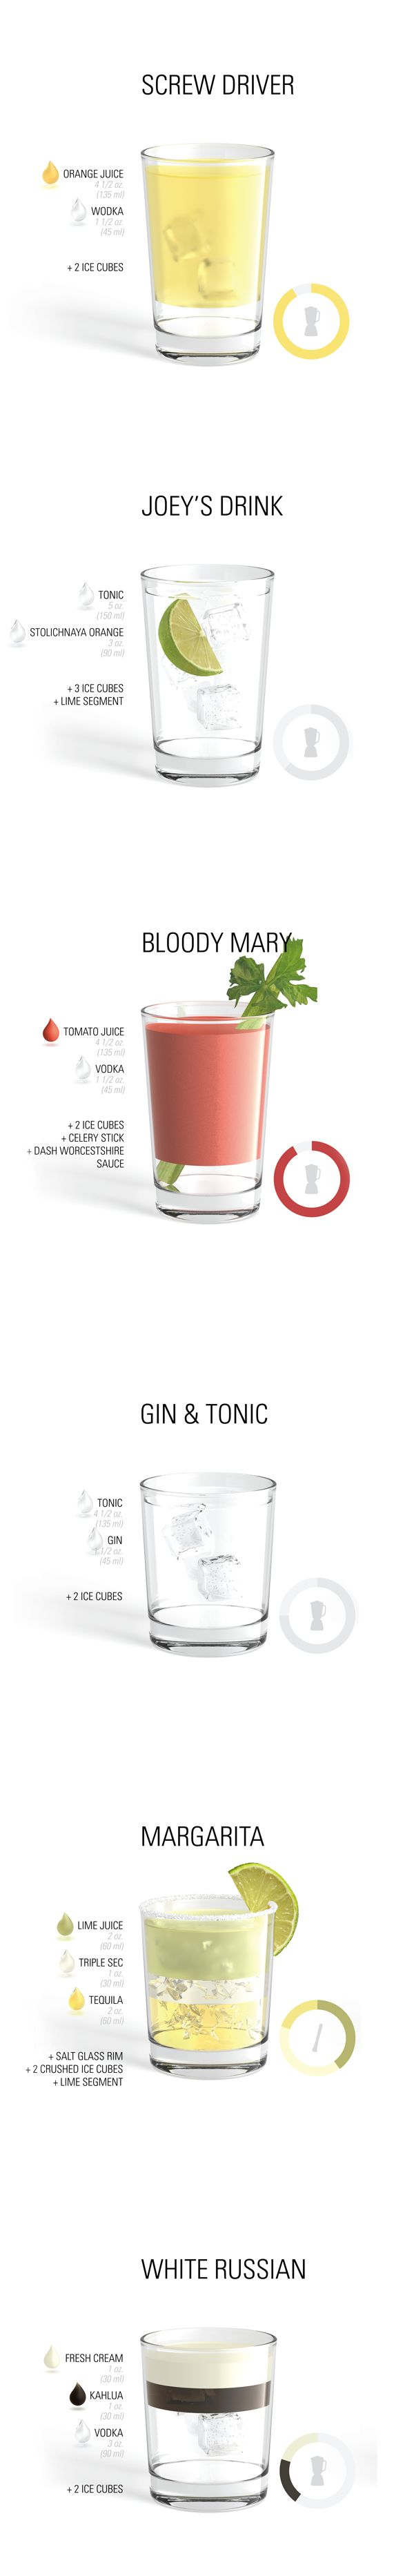 Cocktail Poster by Konstantin Datz